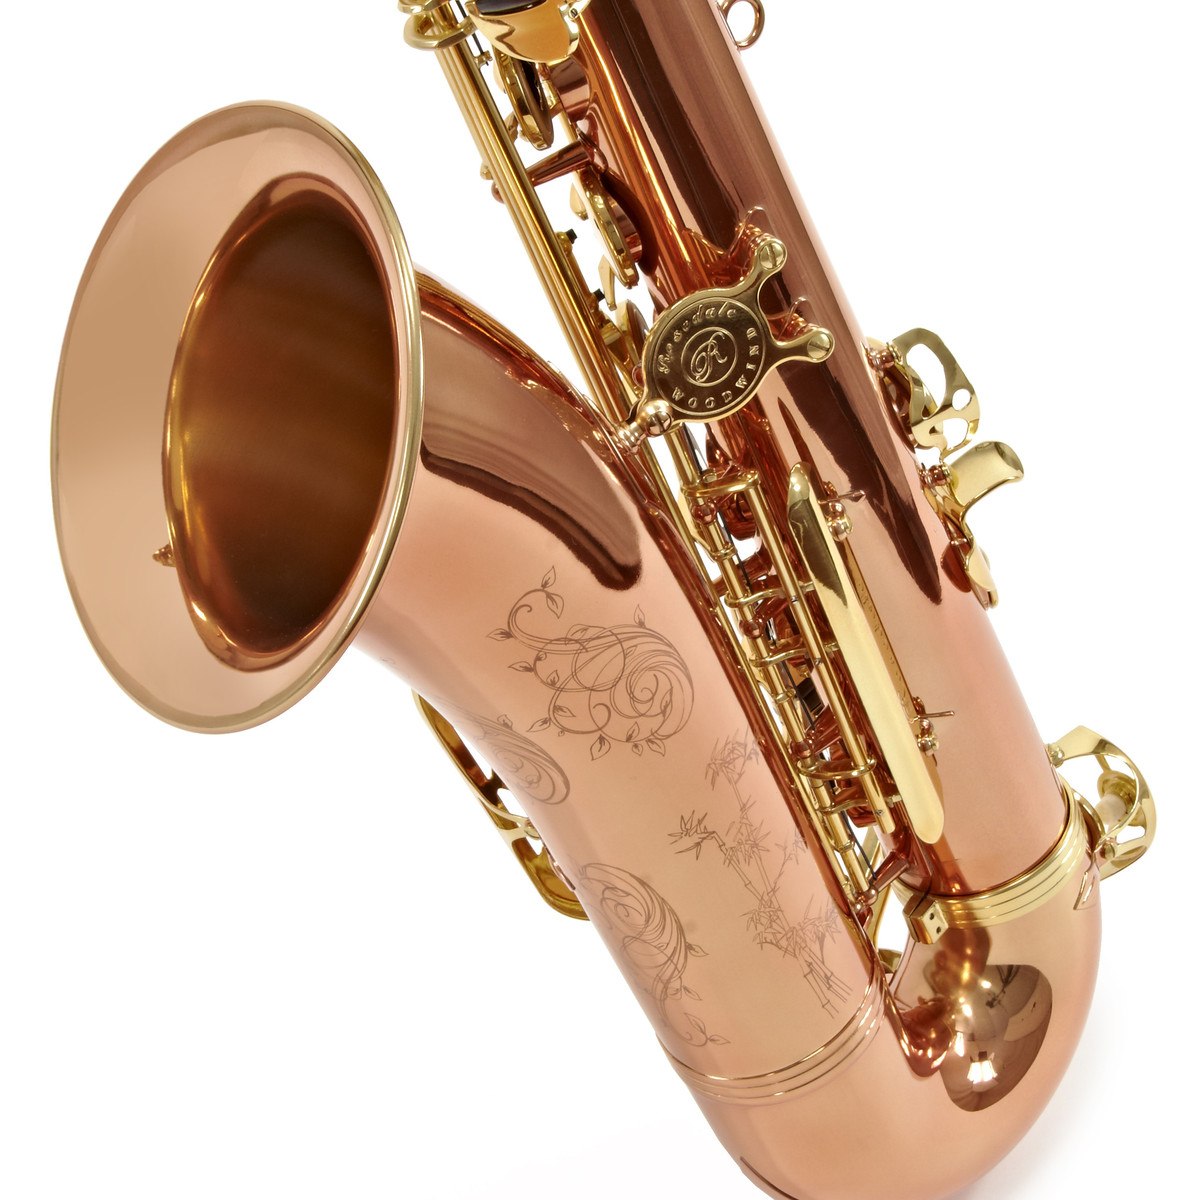 rosedale tenor saxophone rose gold by gear4music at. Black Bedroom Furniture Sets. Home Design Ideas